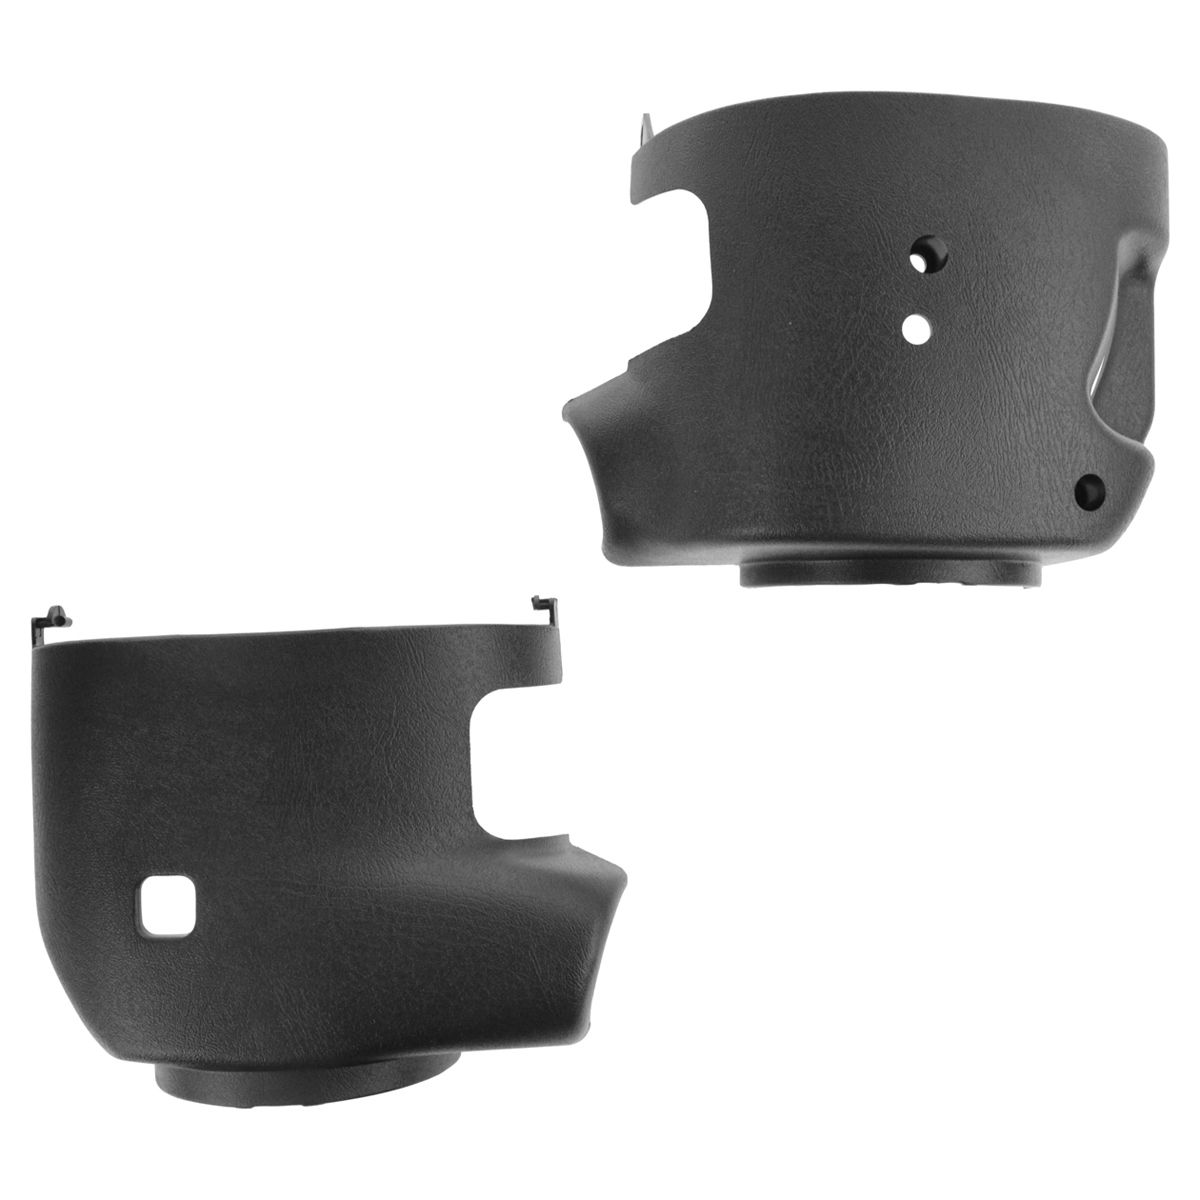 OEM Steering Column Cover Upper & Lower for Cadillac Chevy GMC Oldsmobile